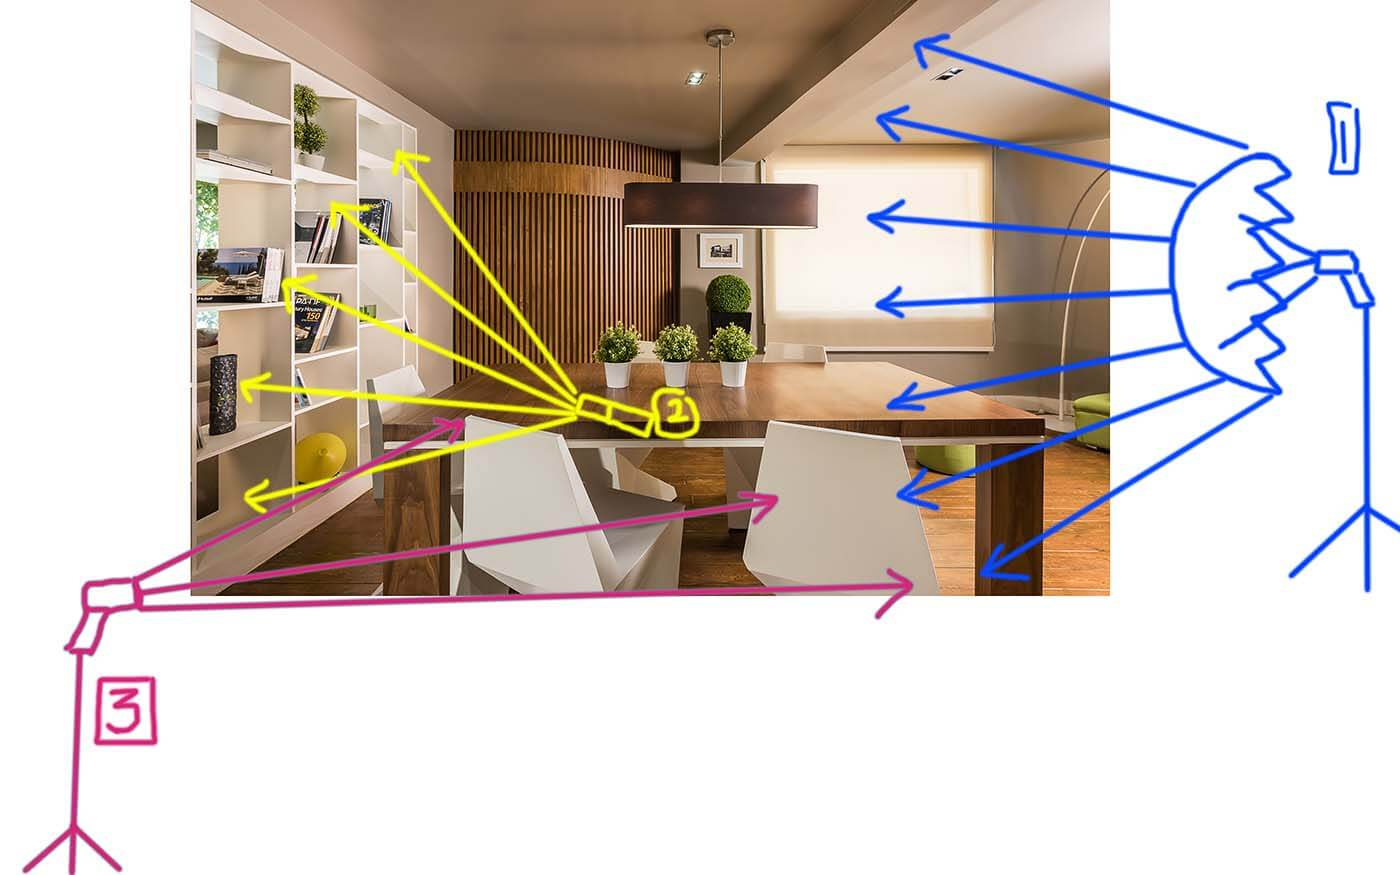 Interiors light setup diagram photograph